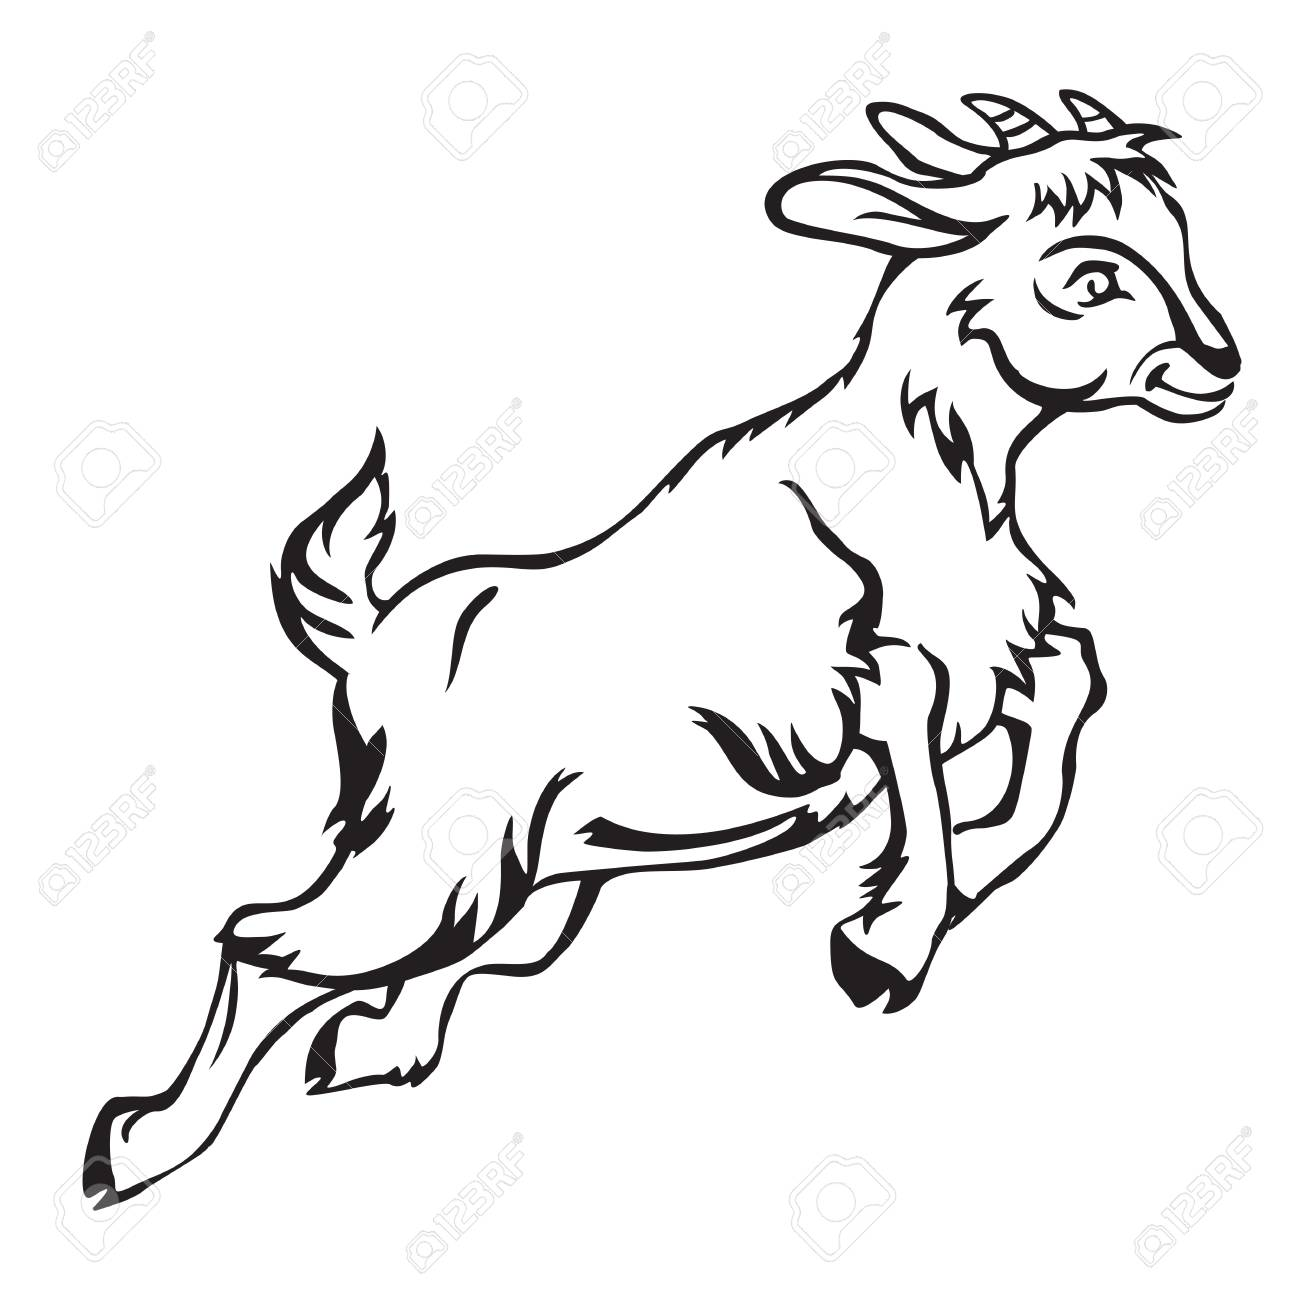 Free jumping download clip. Goat clipart madden mobile